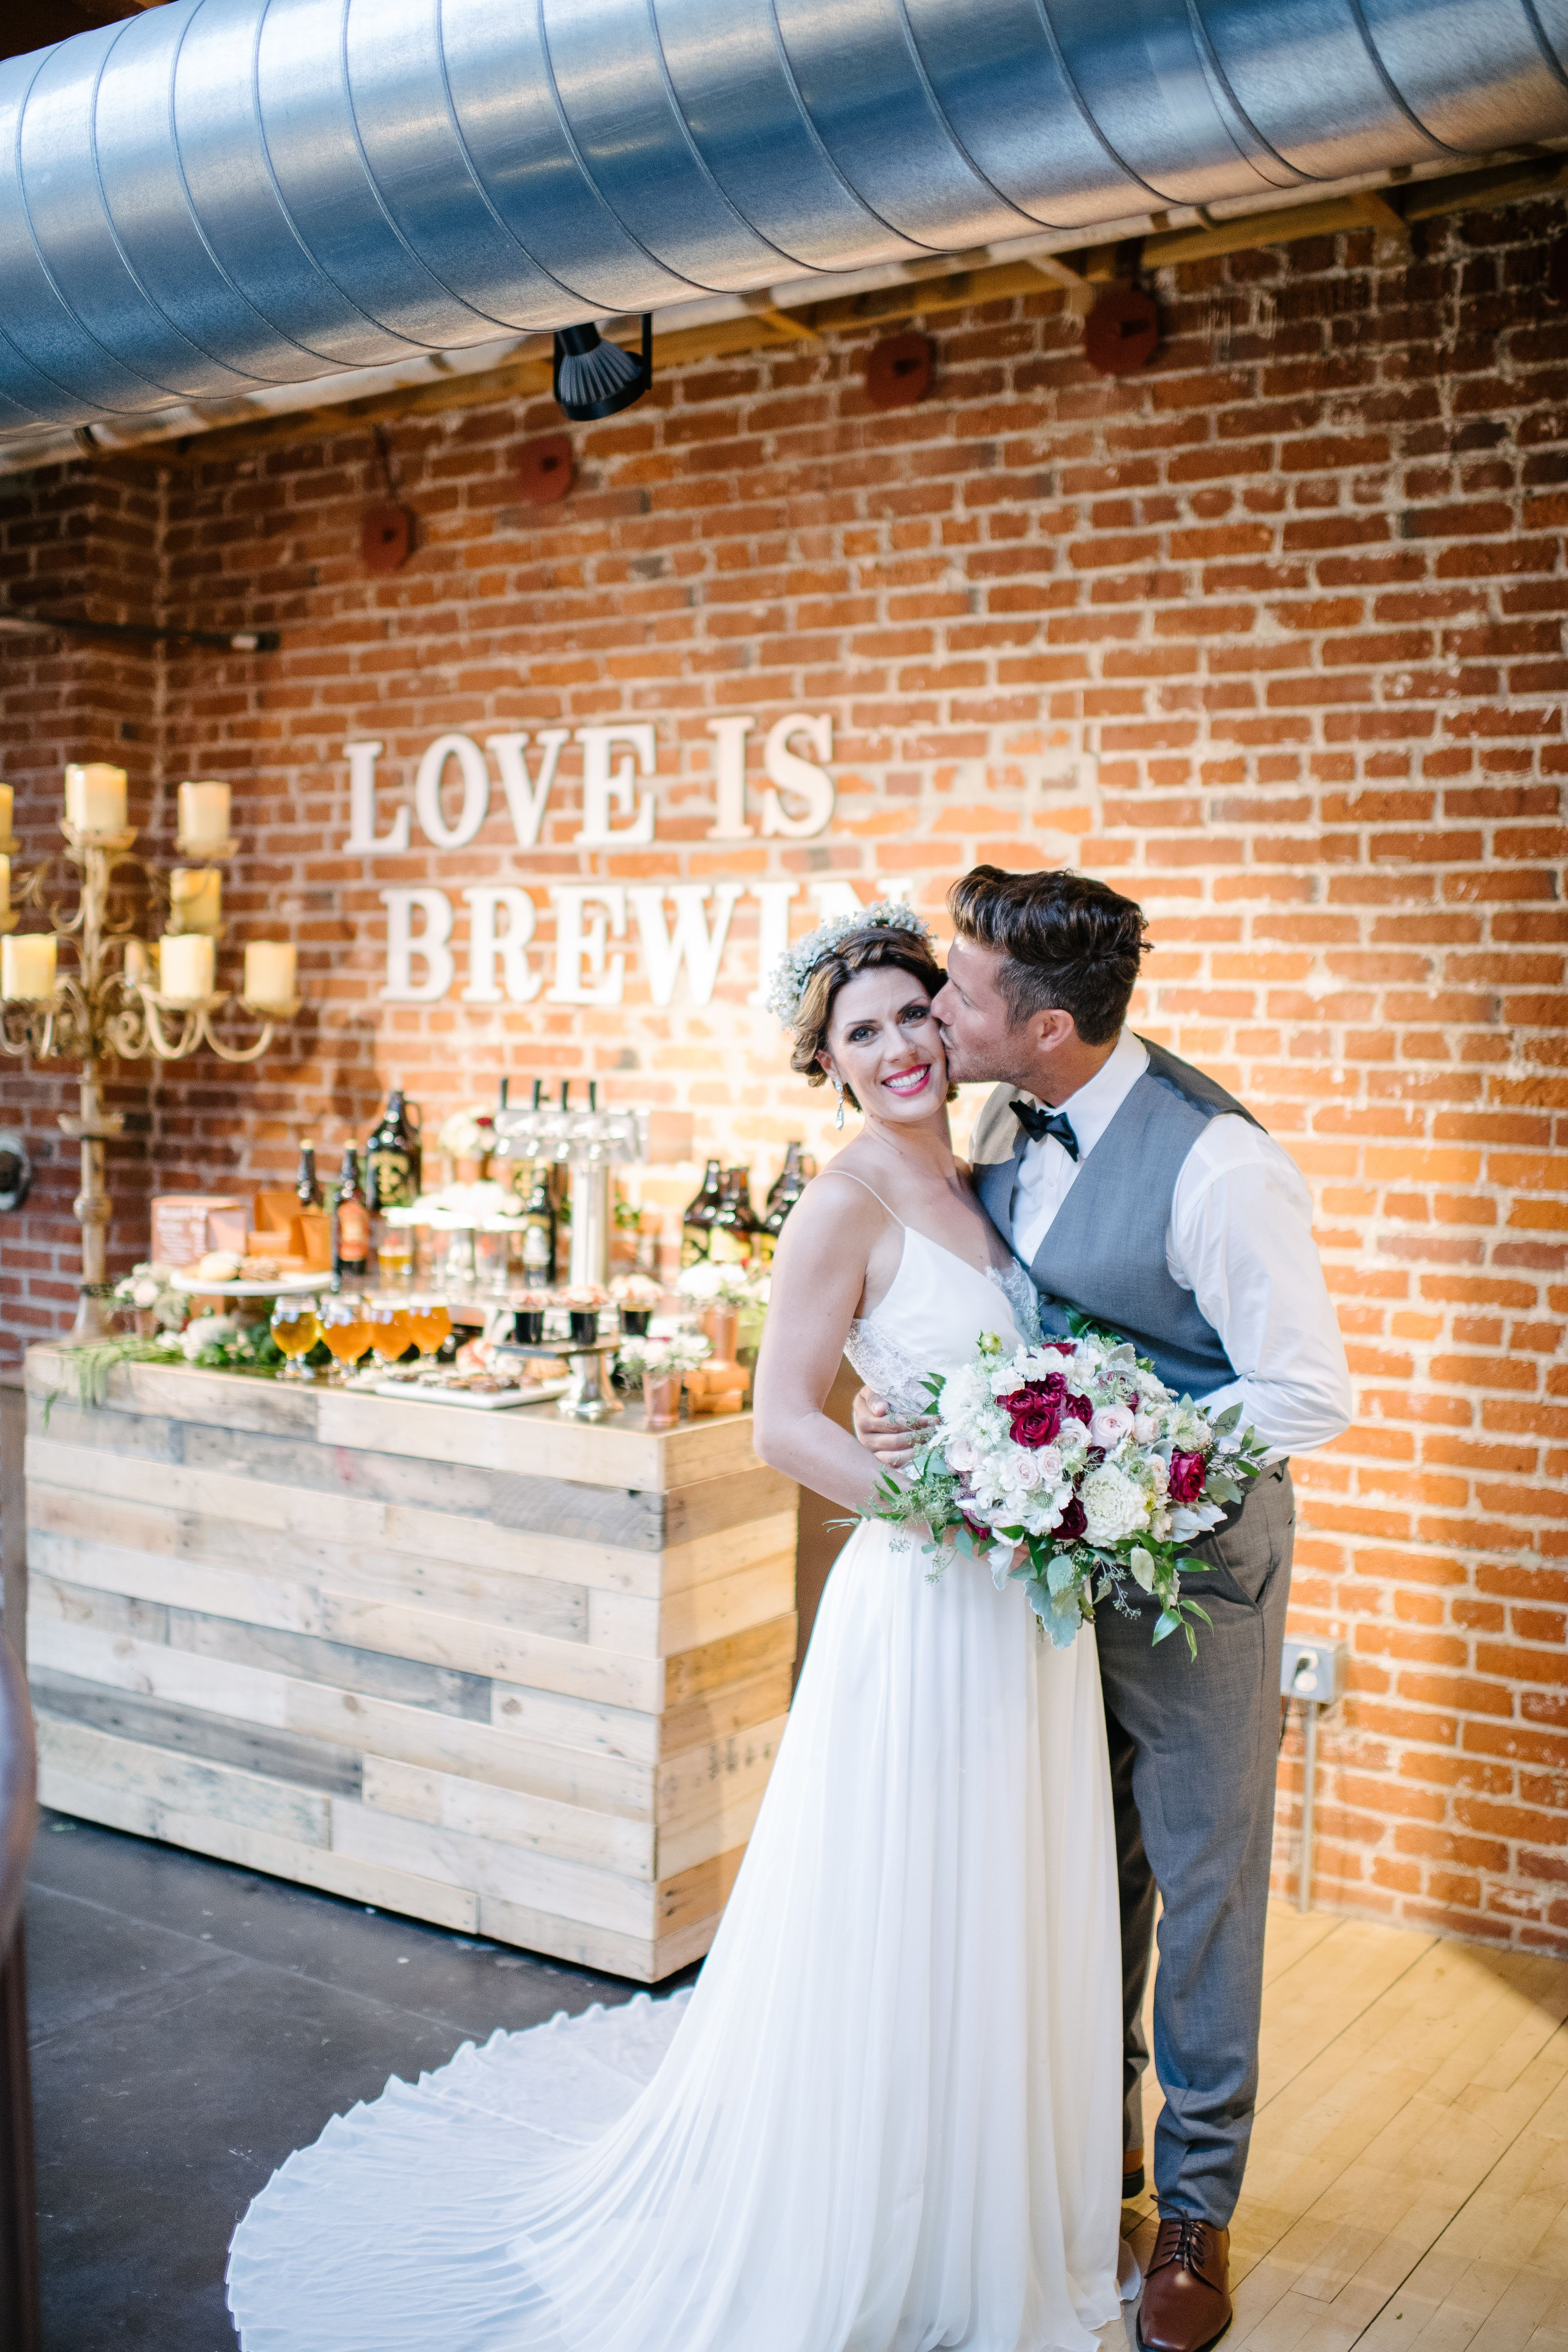 Brewery Wedding Inspiration We Loved Designing This Love Is Brewing Dessert Bar